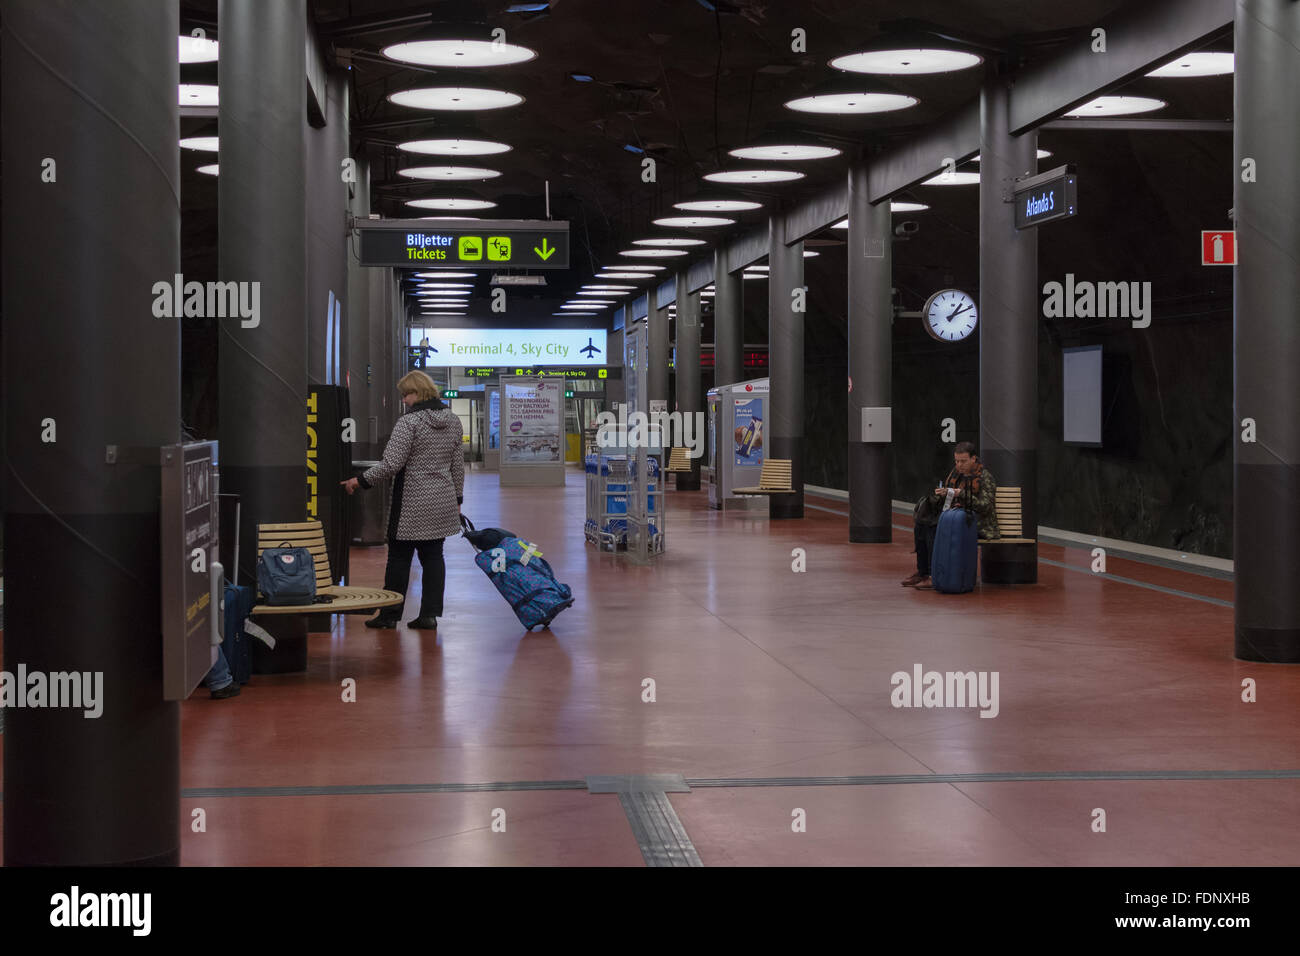 Arlanda South Station in Stockholm, Sweden - one of two stations at Arlanda airport used by the Arlanda Express - Stock Image